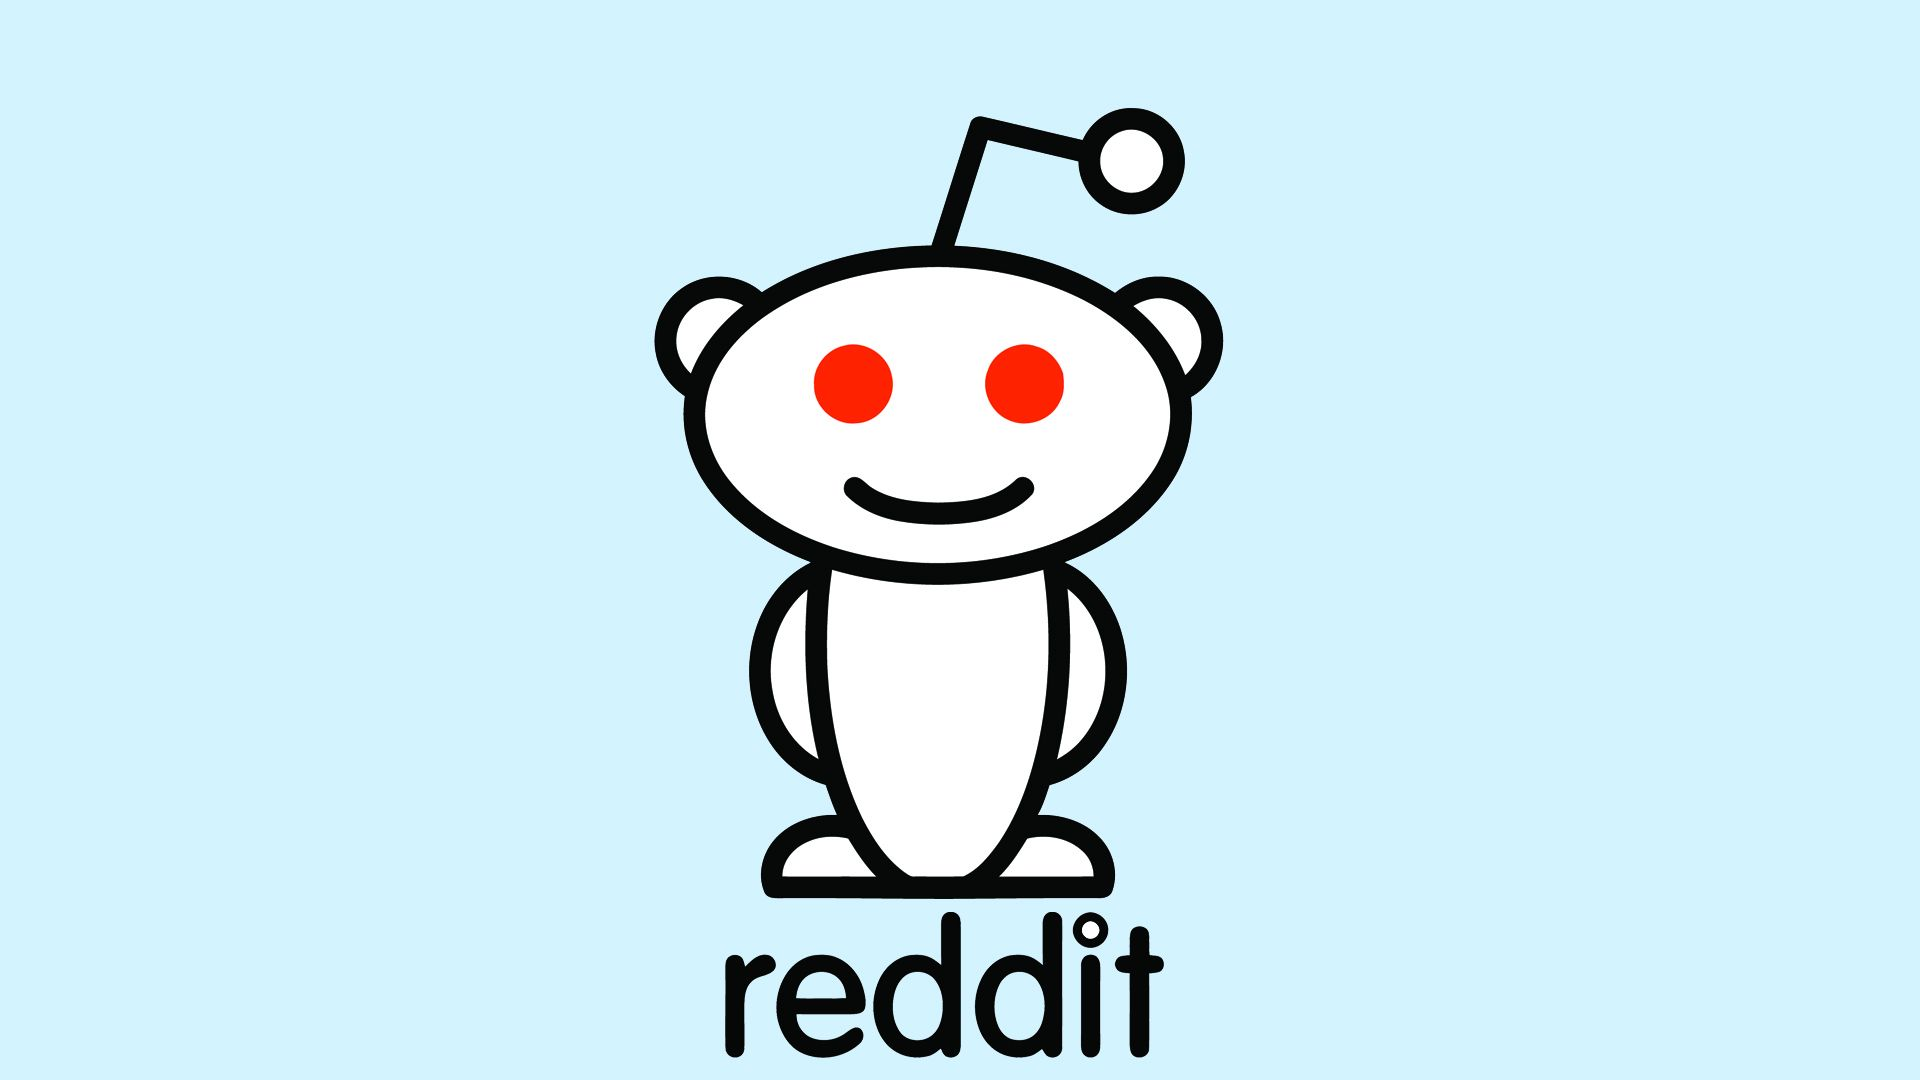 Reddit logo with mascot